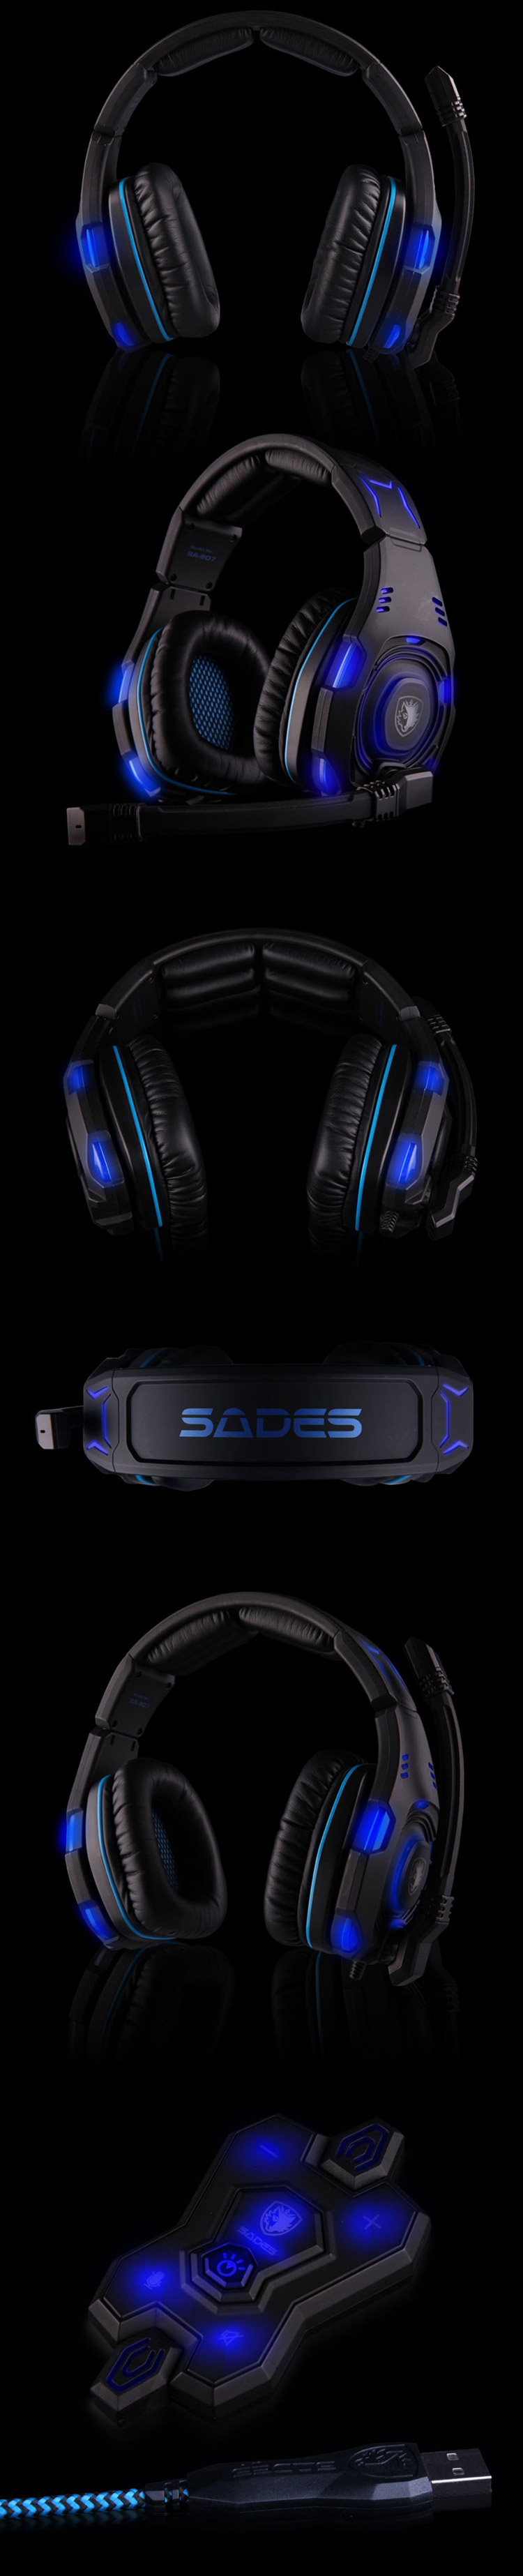 Sades SA - 907 7.1 Surround Sound USB Gaming Headset with Mic Volume Control LED Light for PC Laptop